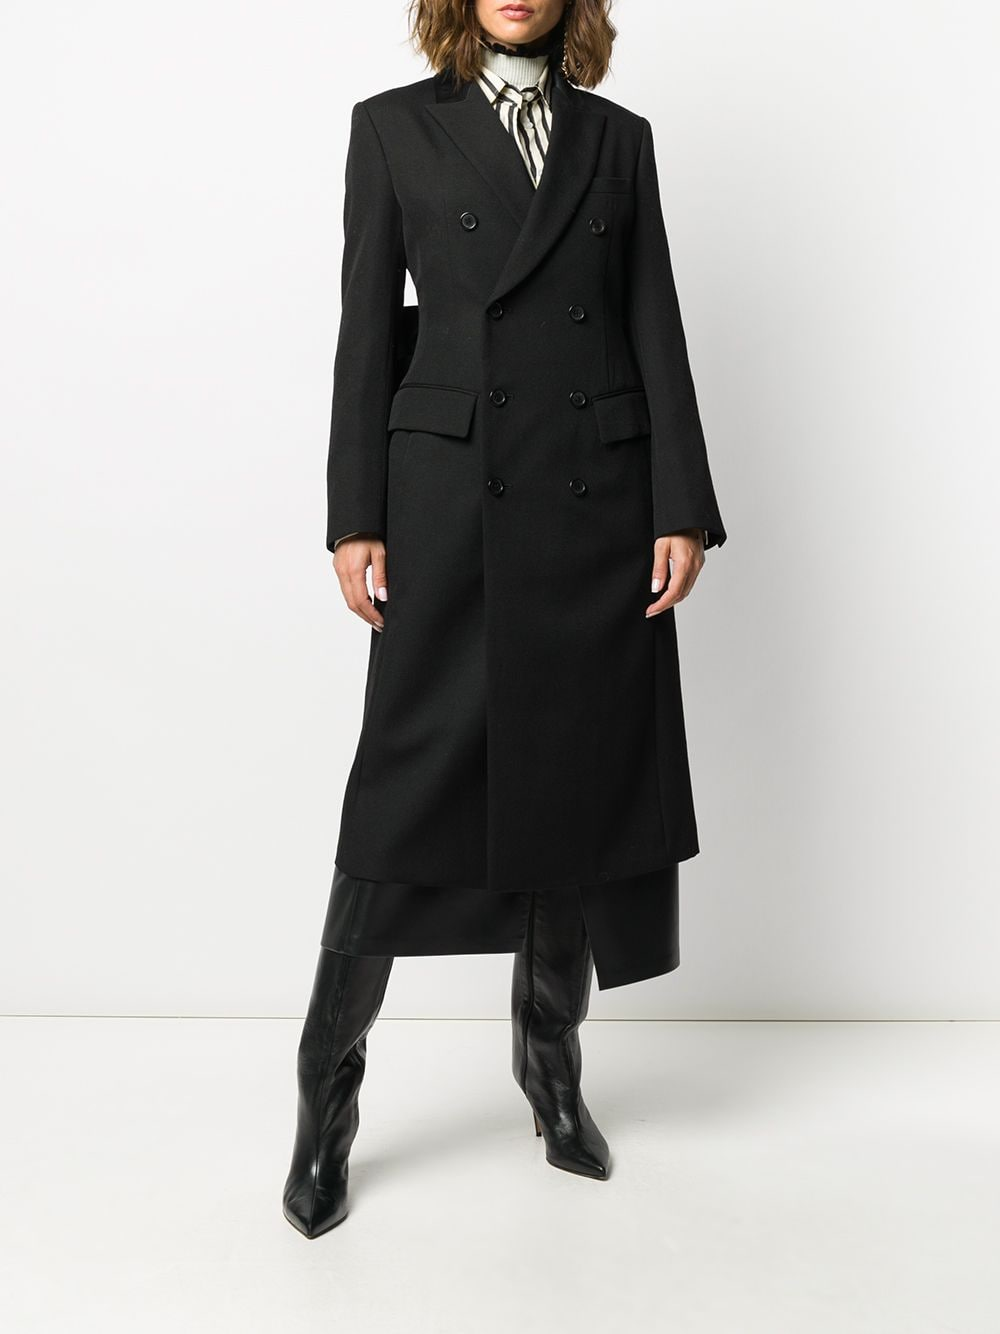 UNDERCOVER WOMEN  BOW TIE DOUBLE BREATED COAT